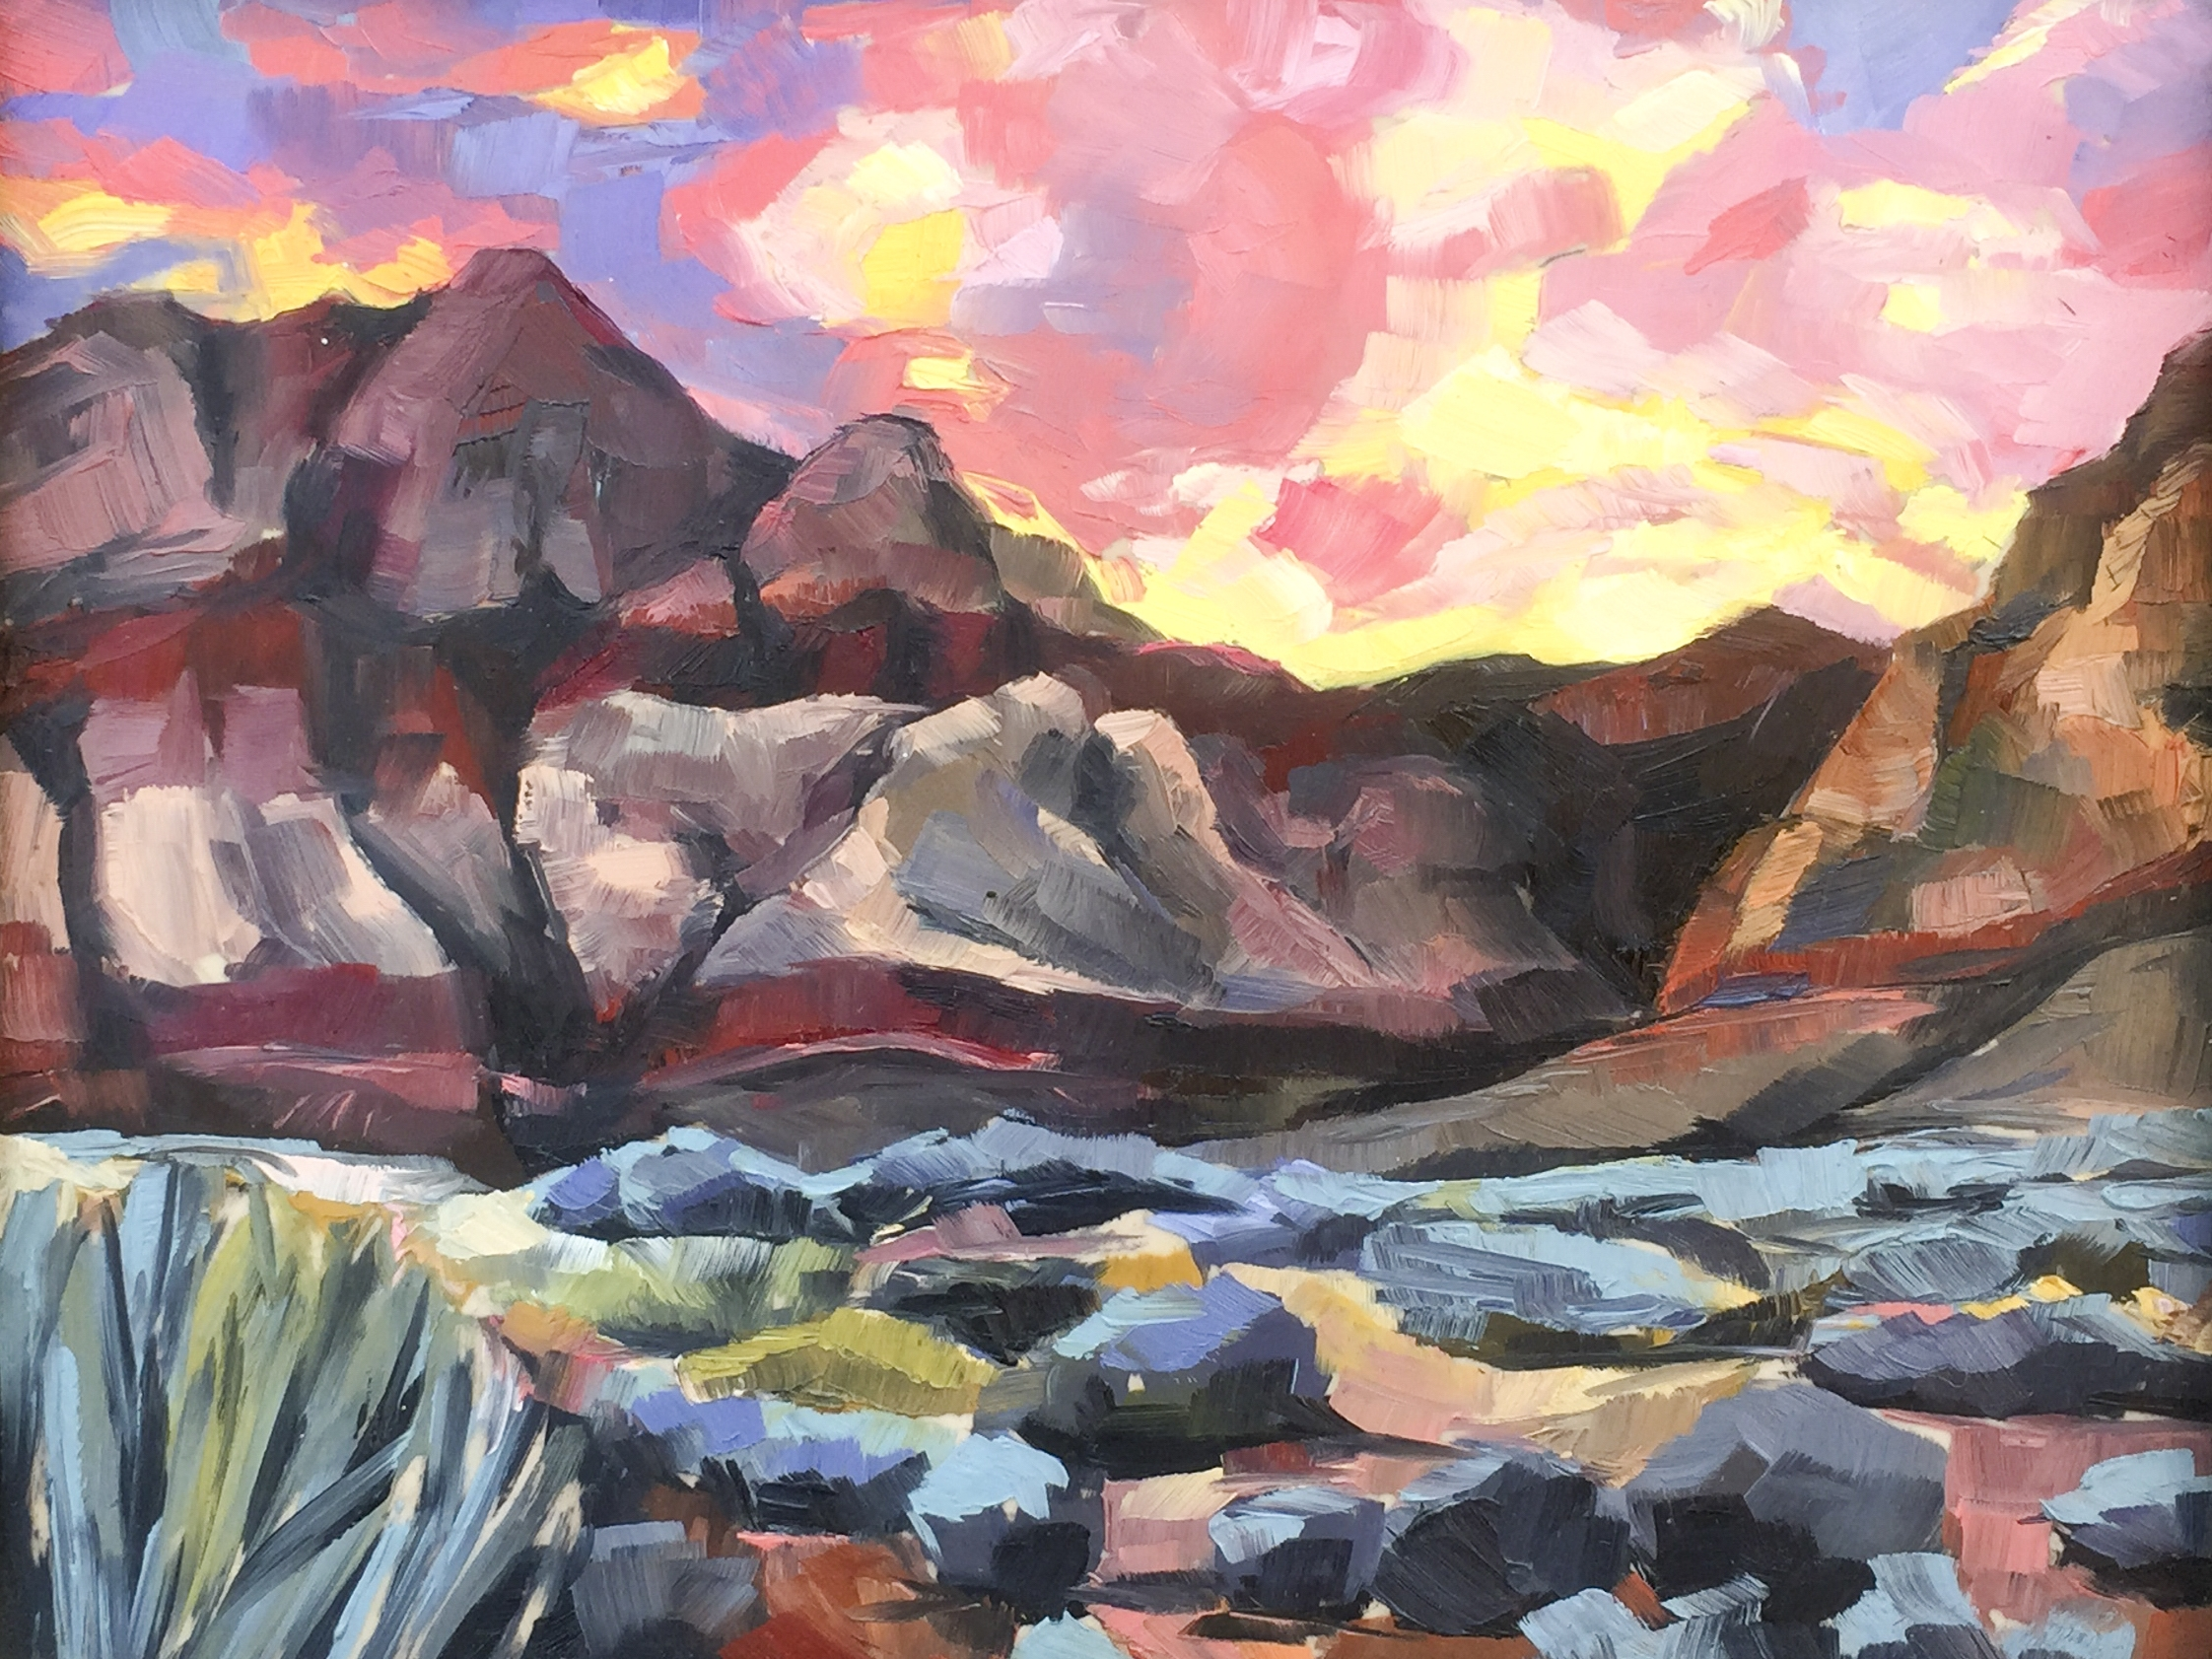 RED ROCKS, oil on board, 11 x 14 inches -10% of sales to the Conservation Alliance